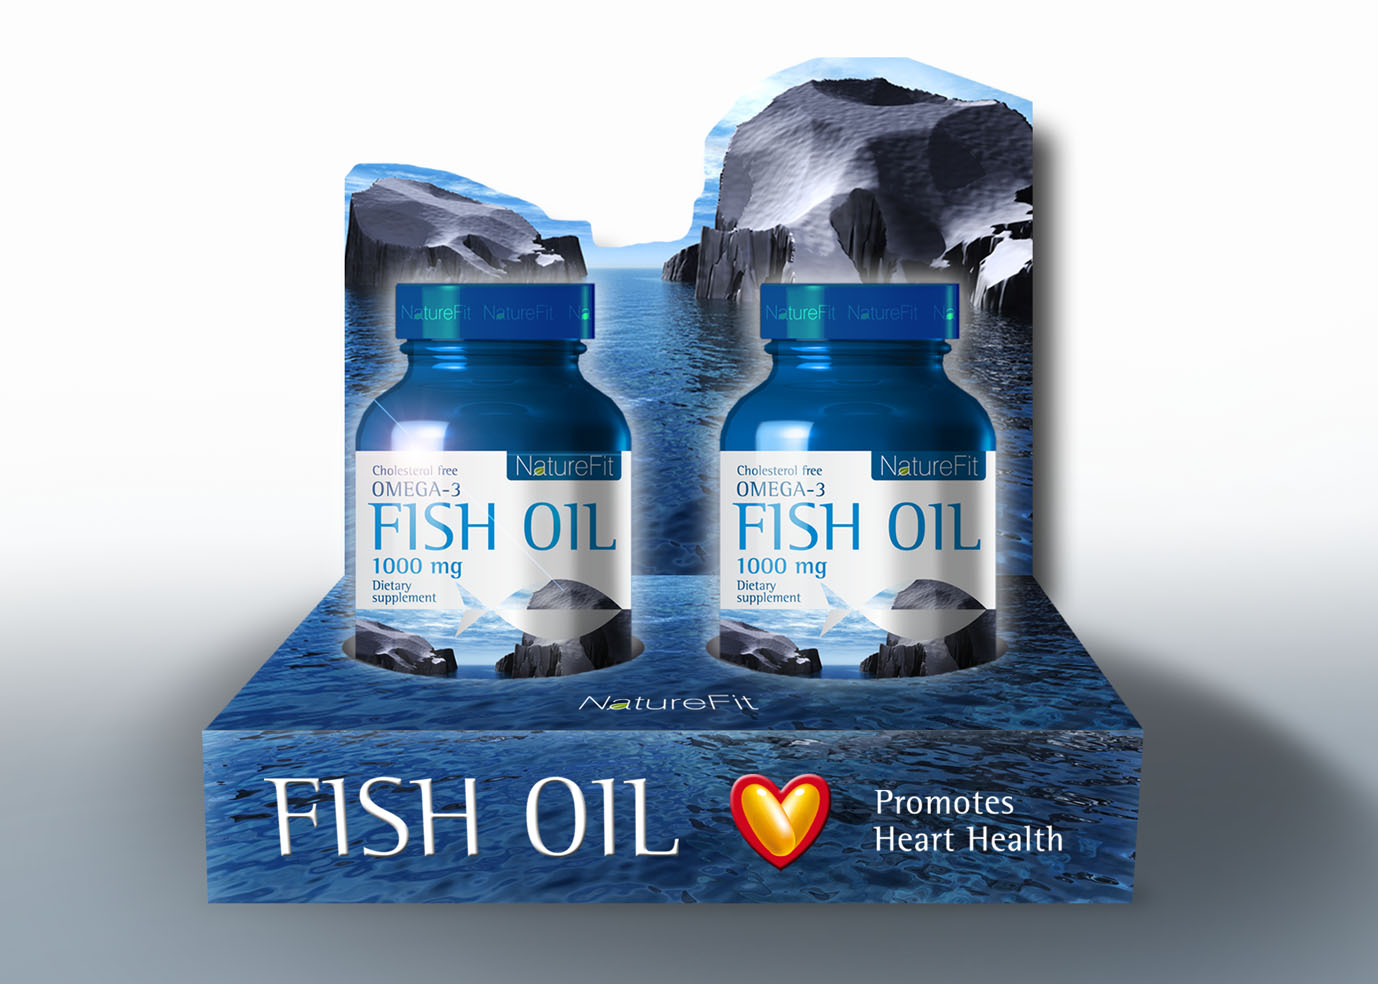 Naturefit visual identity packaging art re directions for Fish oil for add